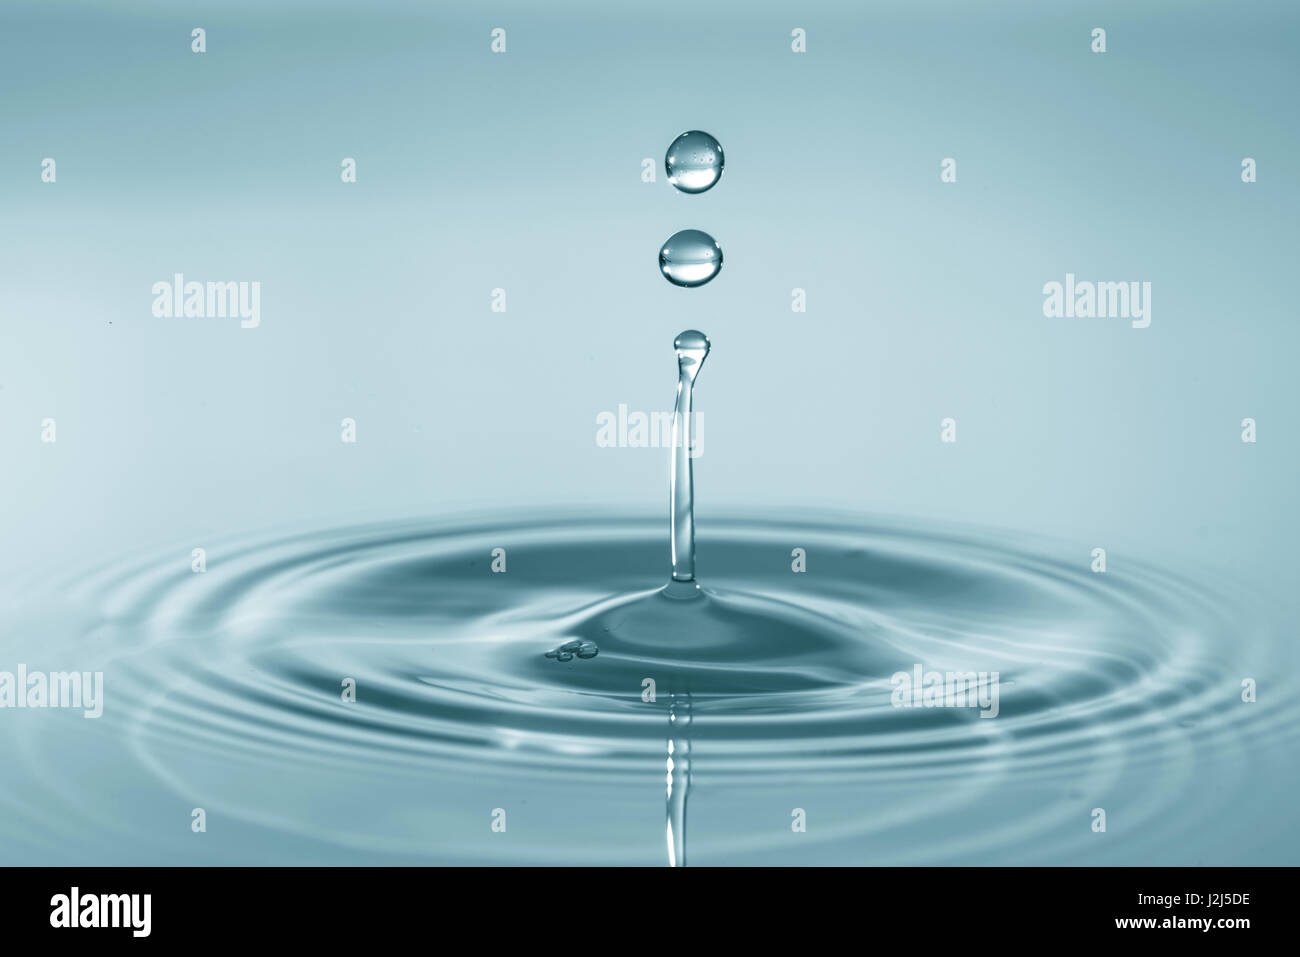 Water droplet on water surface. - Stock Image